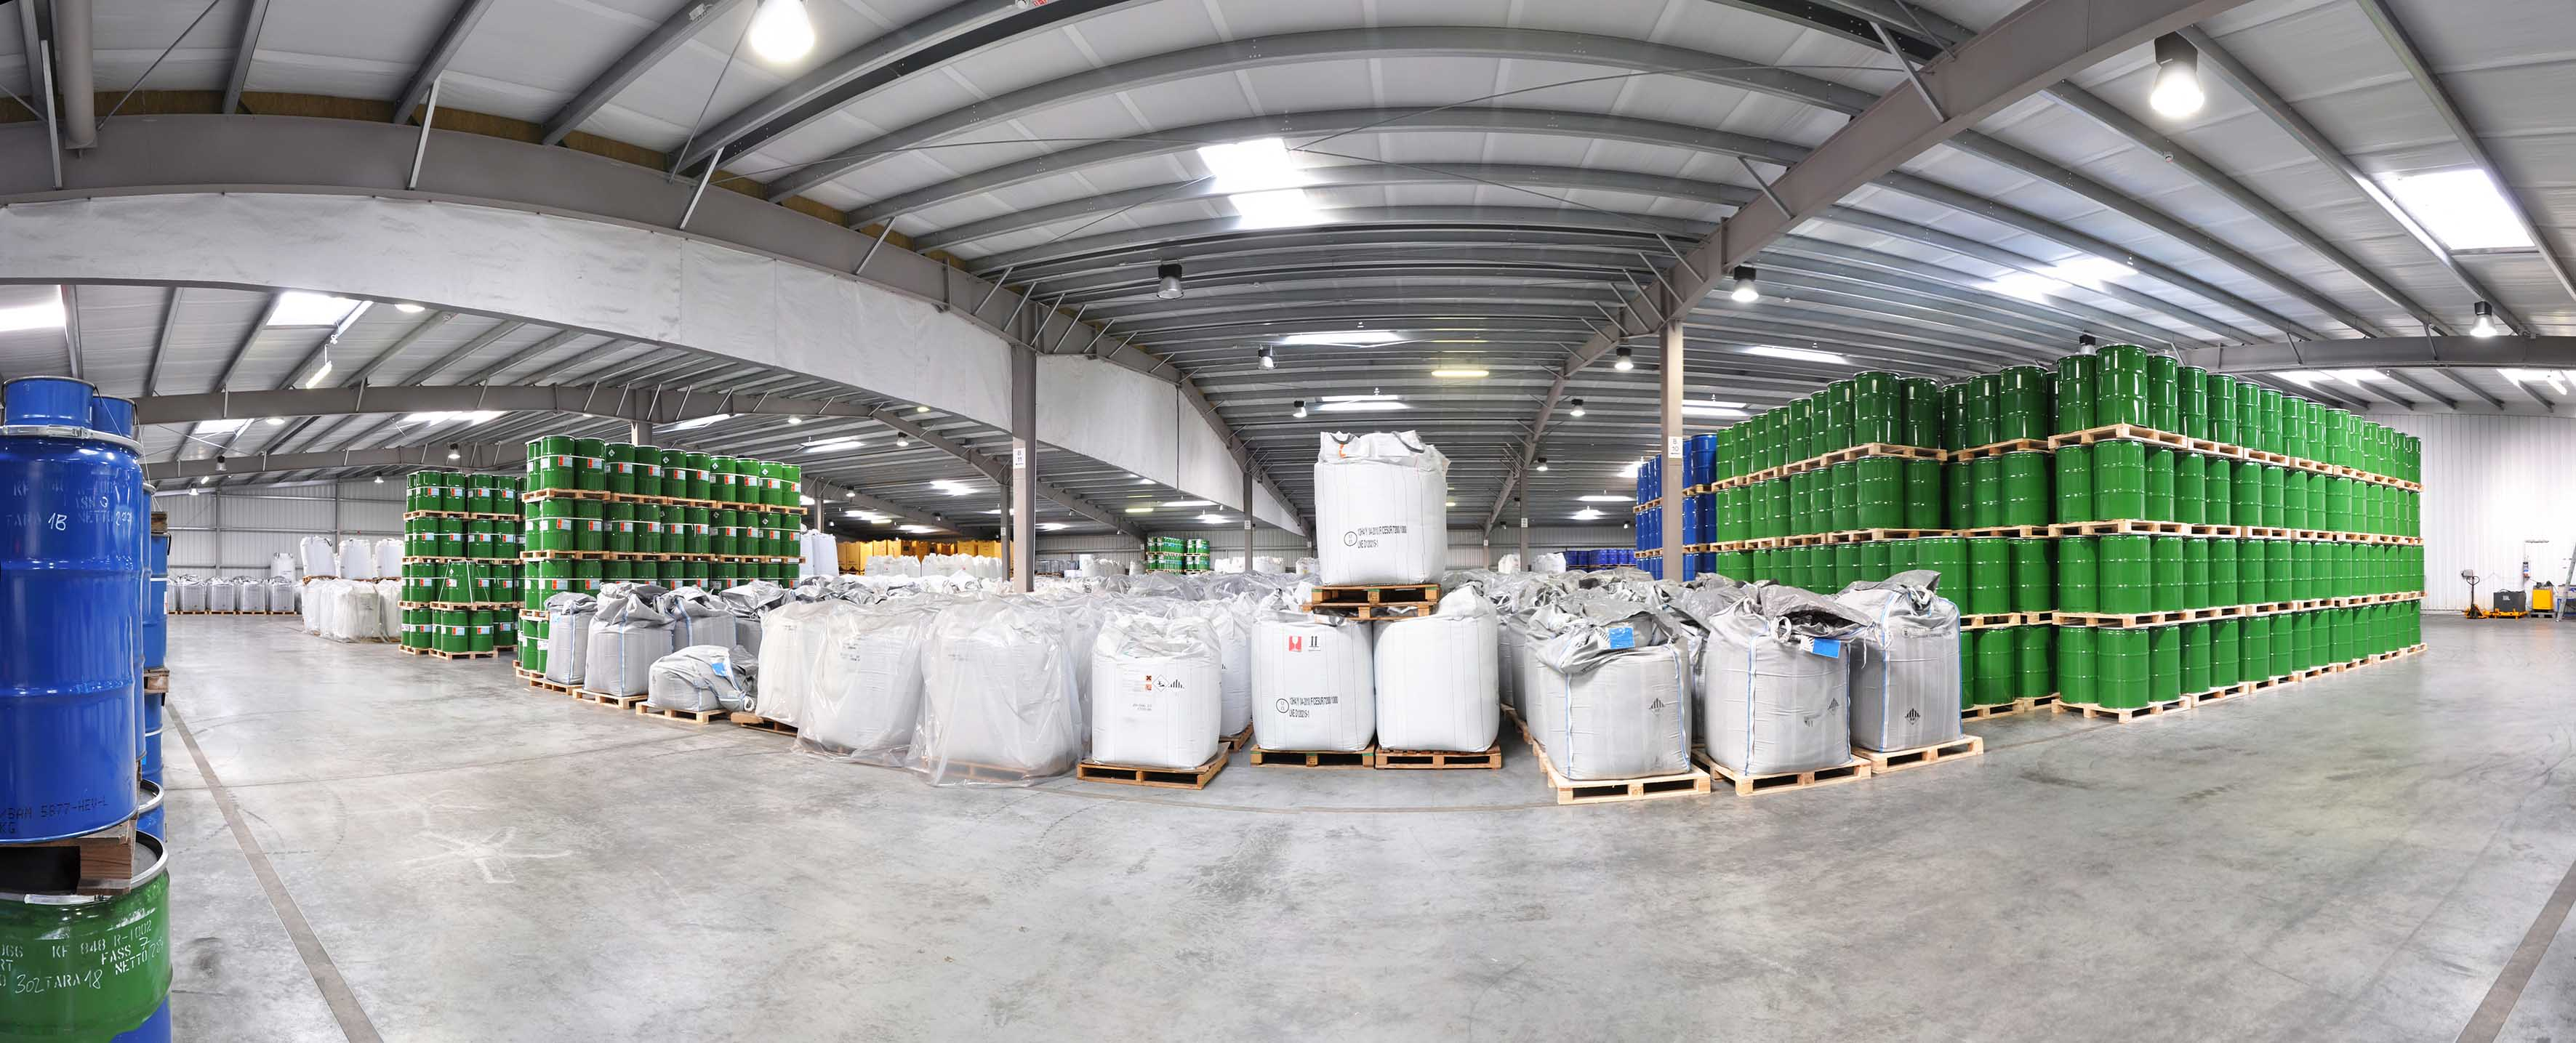 Warehouse Training Available From Flt To Dangerous Goods